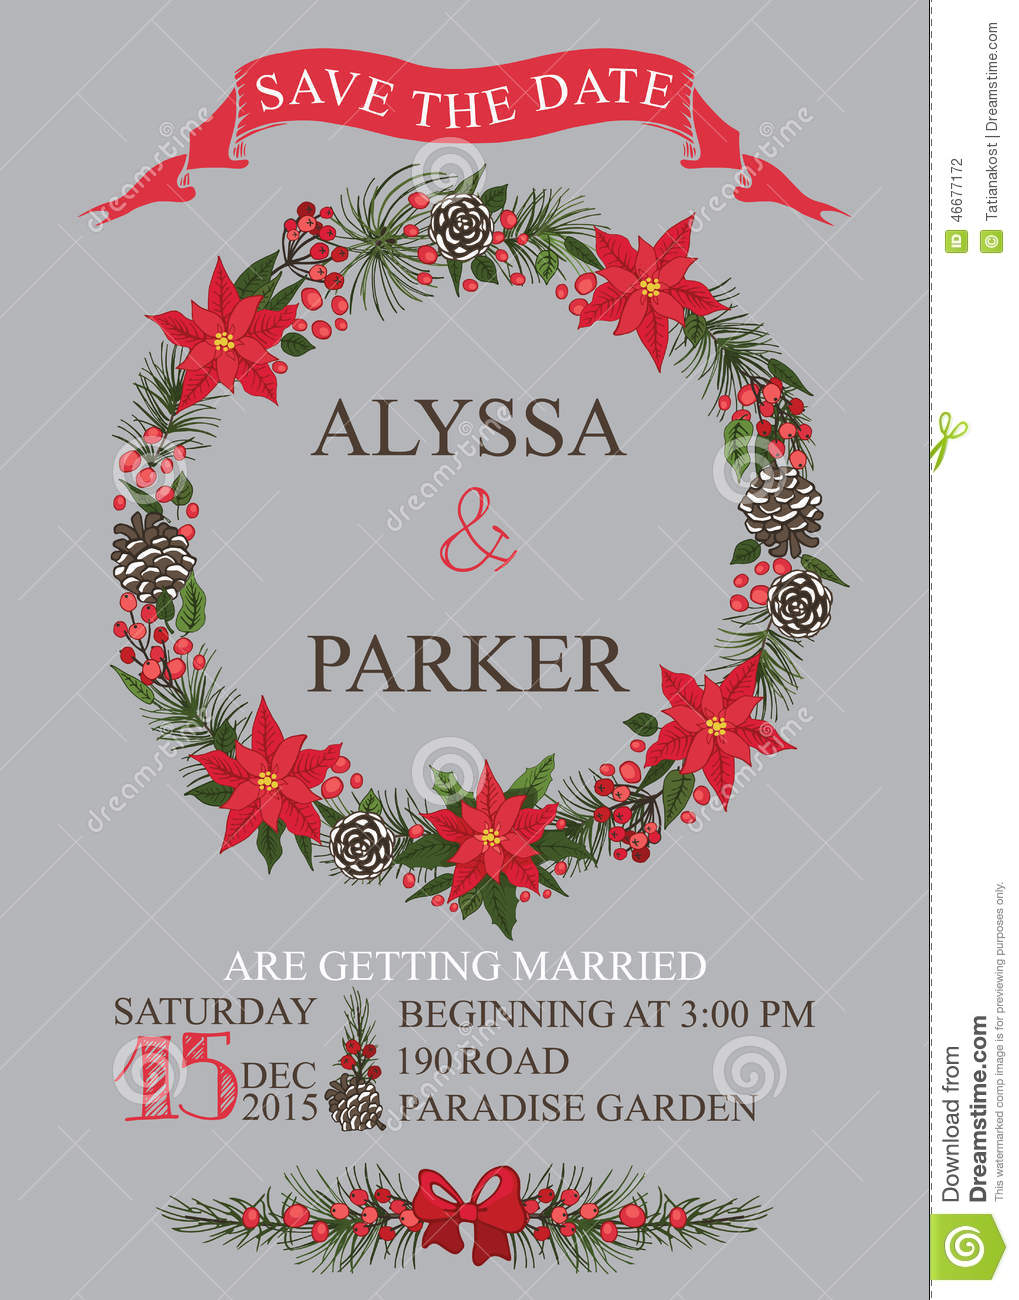 Save The Date Christmas Cards.Winter Wedding Save Date Card Christmas Wreath Stock Vector